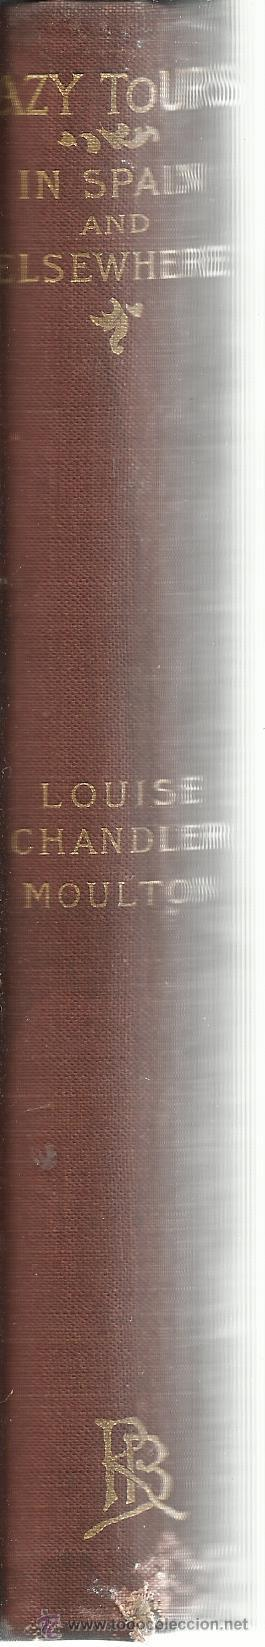 Libros antiguos: LZY TOURS IN SPAIN AND ELSEWHERE. LOUISE CHANDLER MOULTON. ROBERTS BROTHERS. BOSTON. USA. 1896 - Foto 3 - 52425698